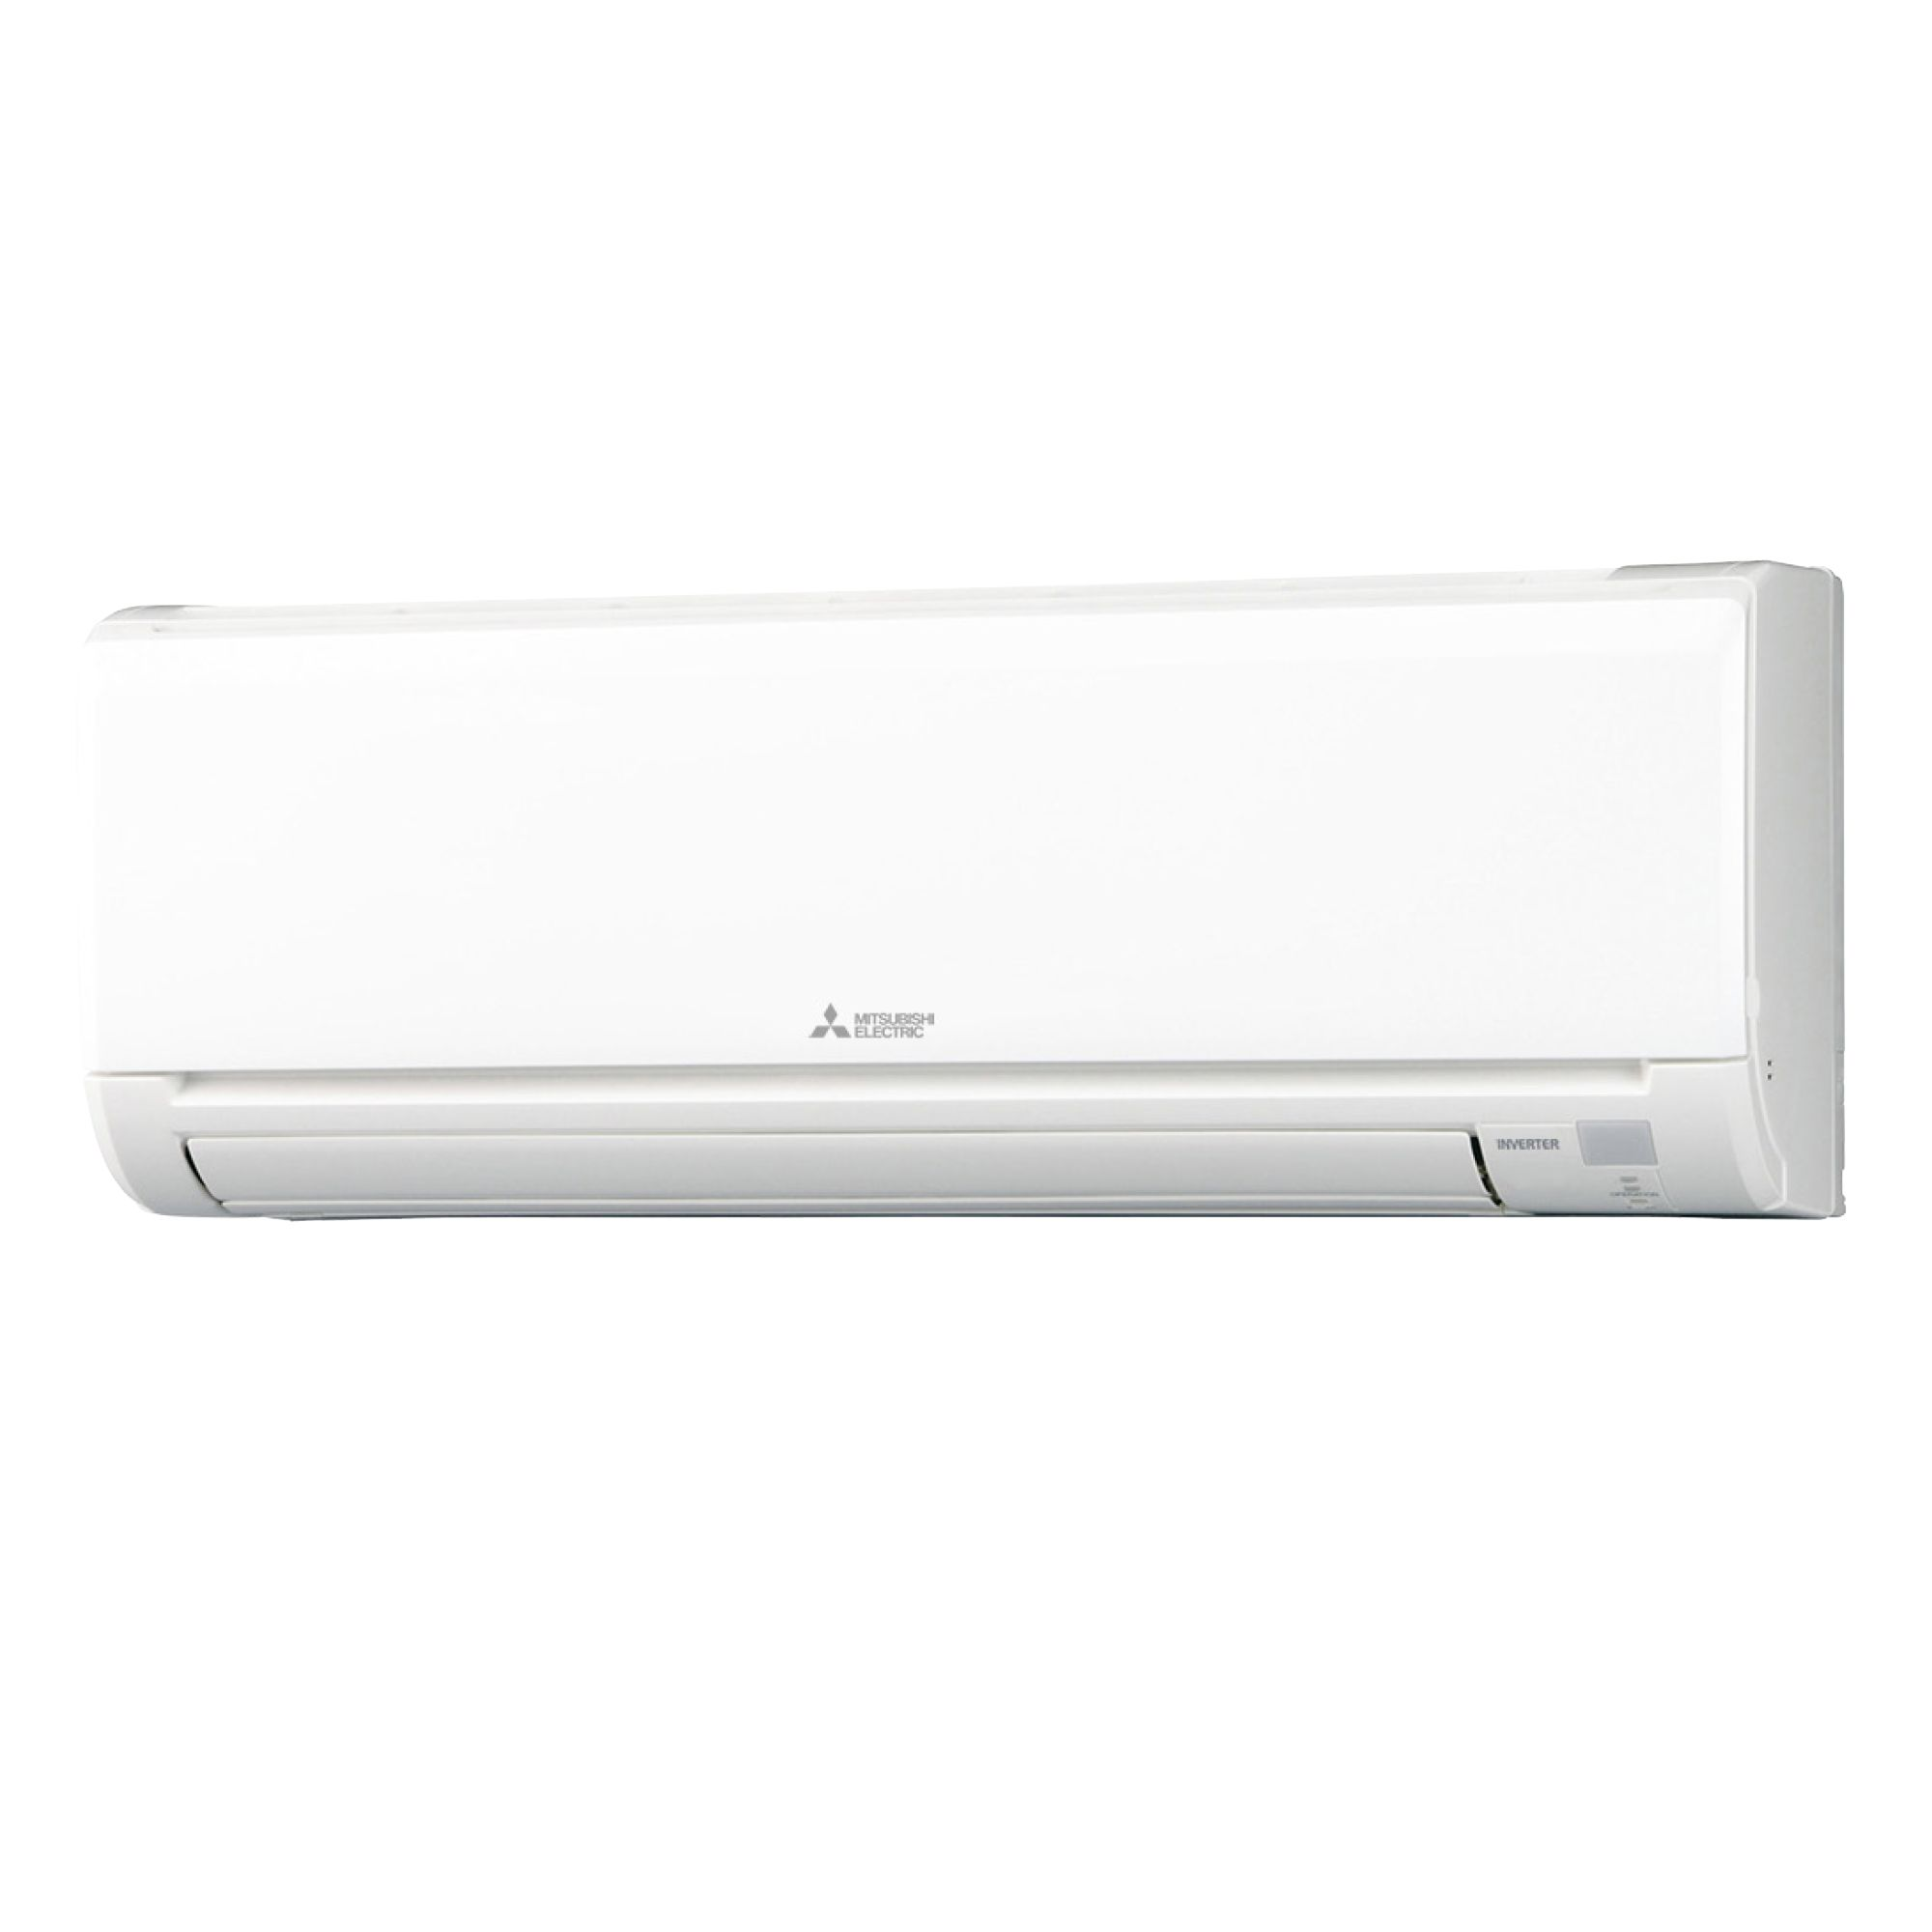 unit residential conditioner modernize condition on installation mitsubishi an repair contractor central prices with cost price calculator air hvac working outside ac